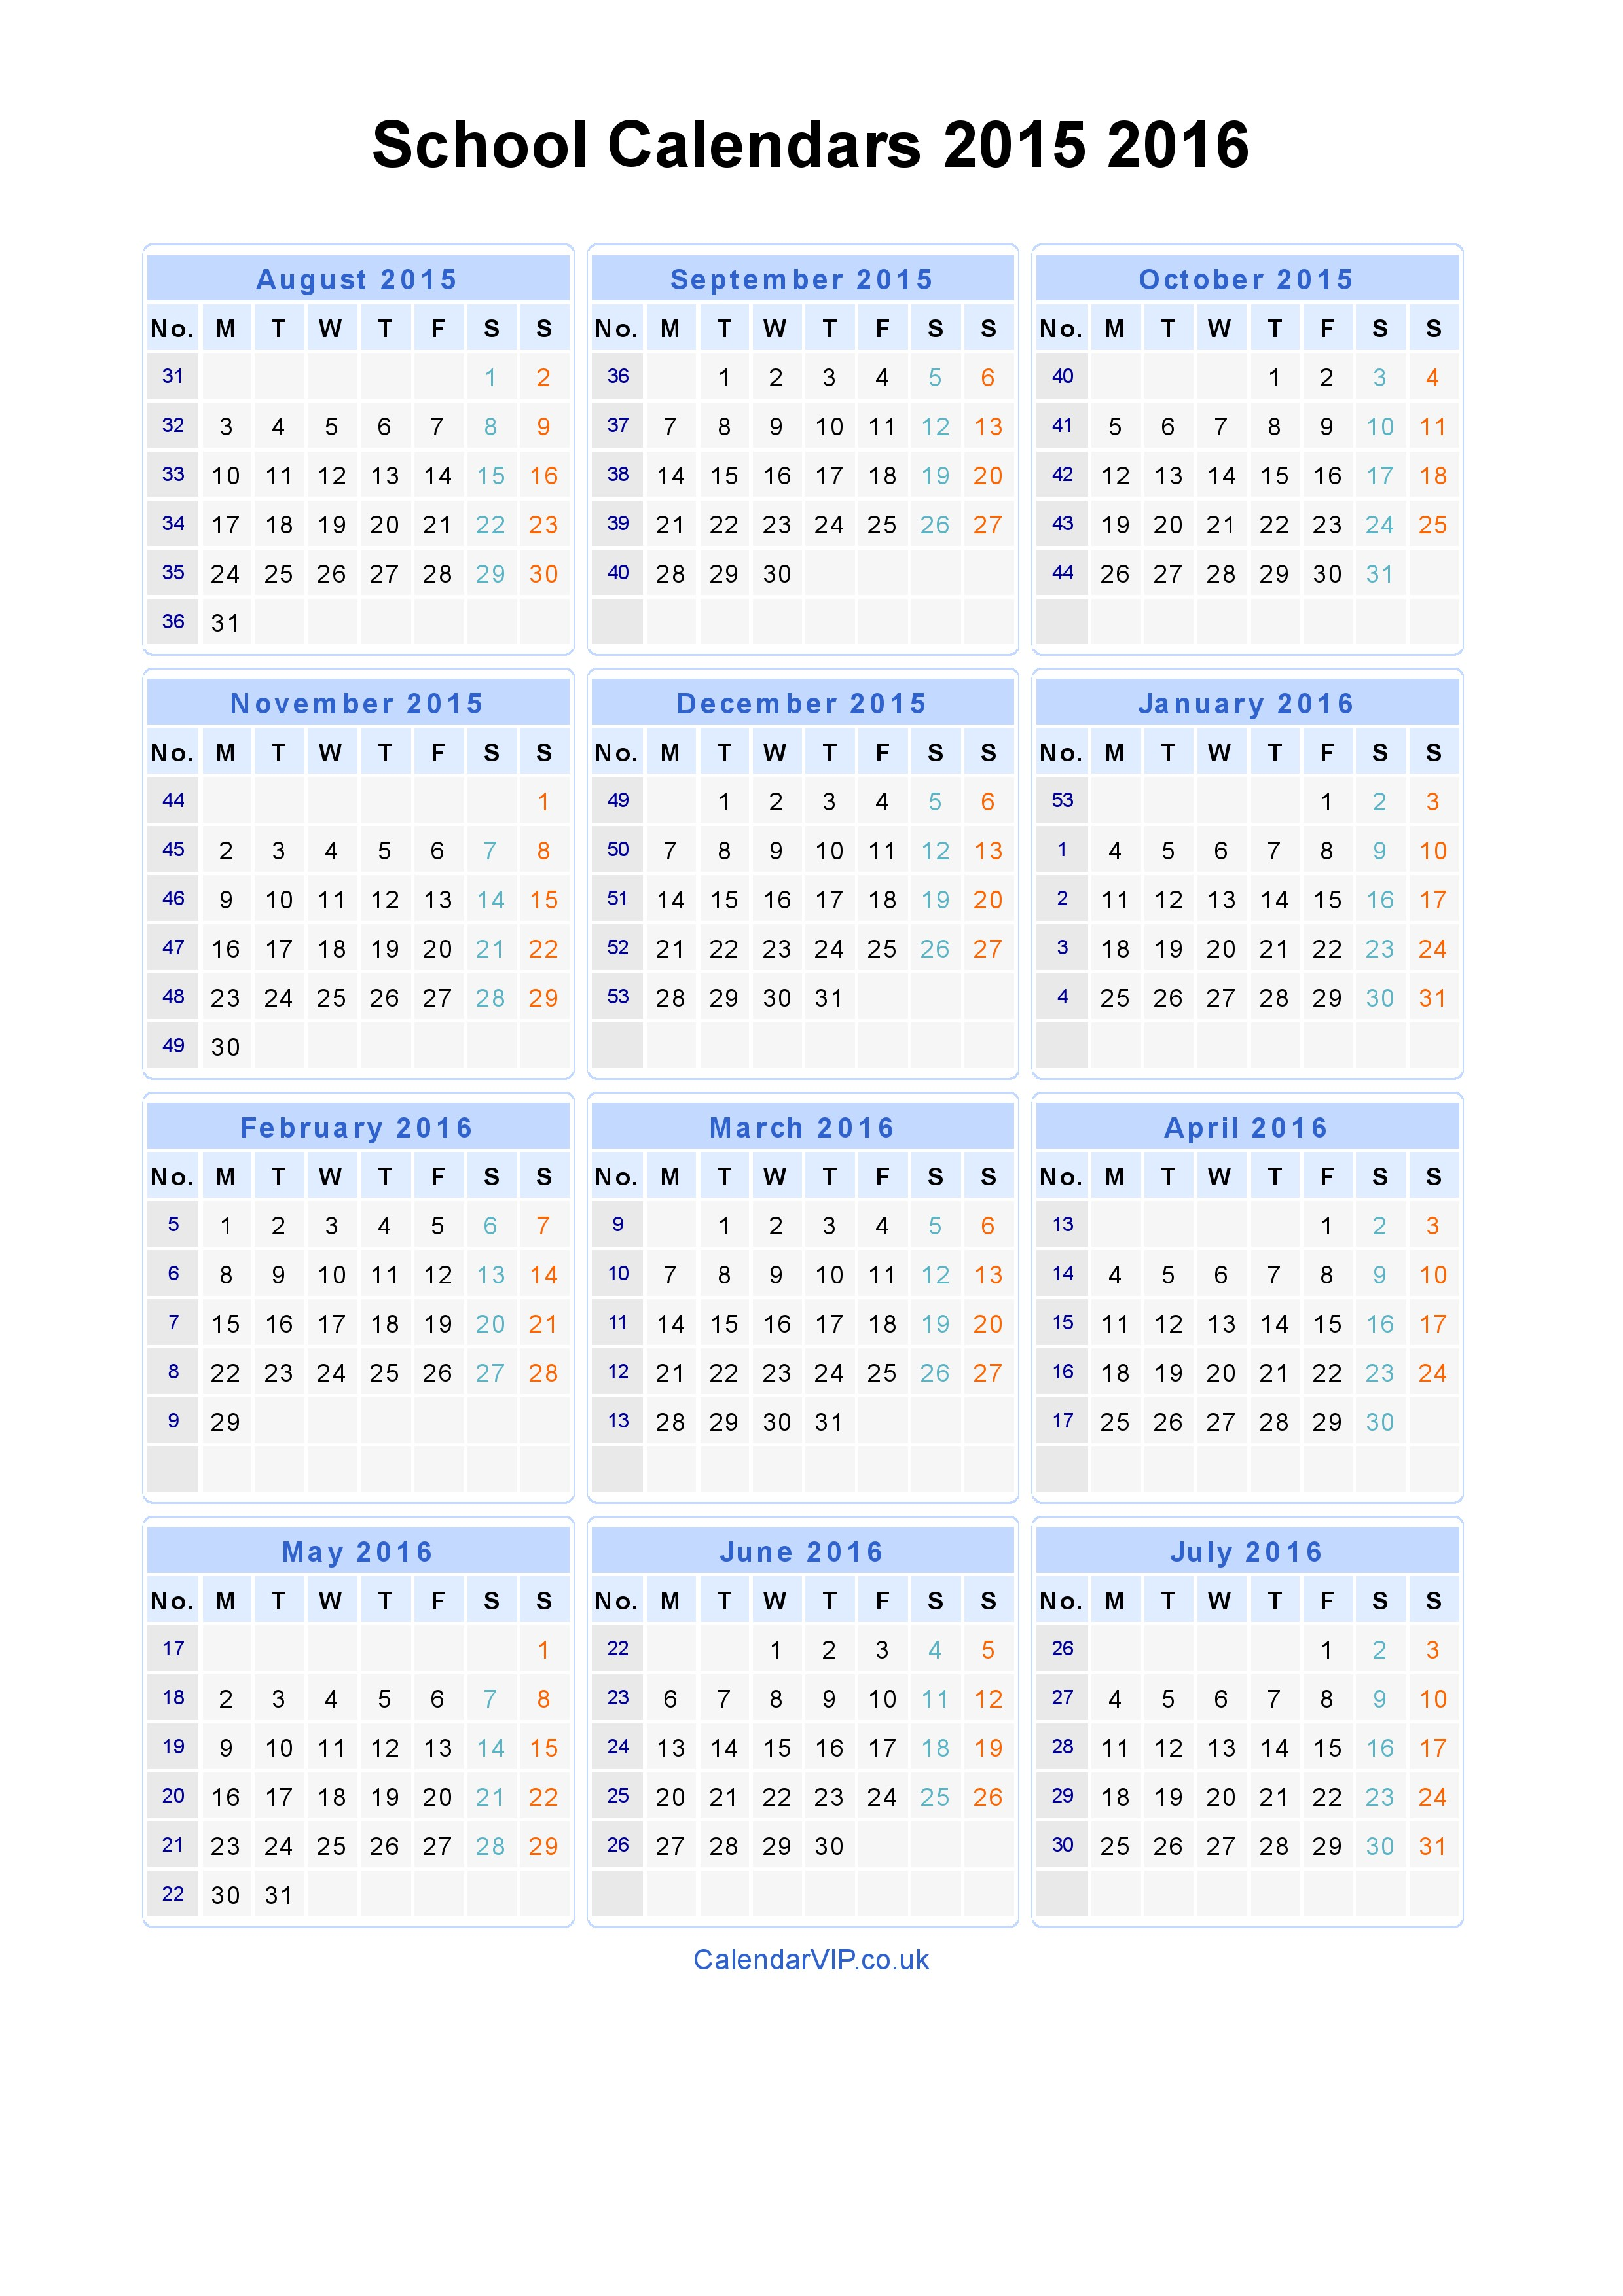 2019 School Year Calendar Template With Calendars 2015 2016 From August To July